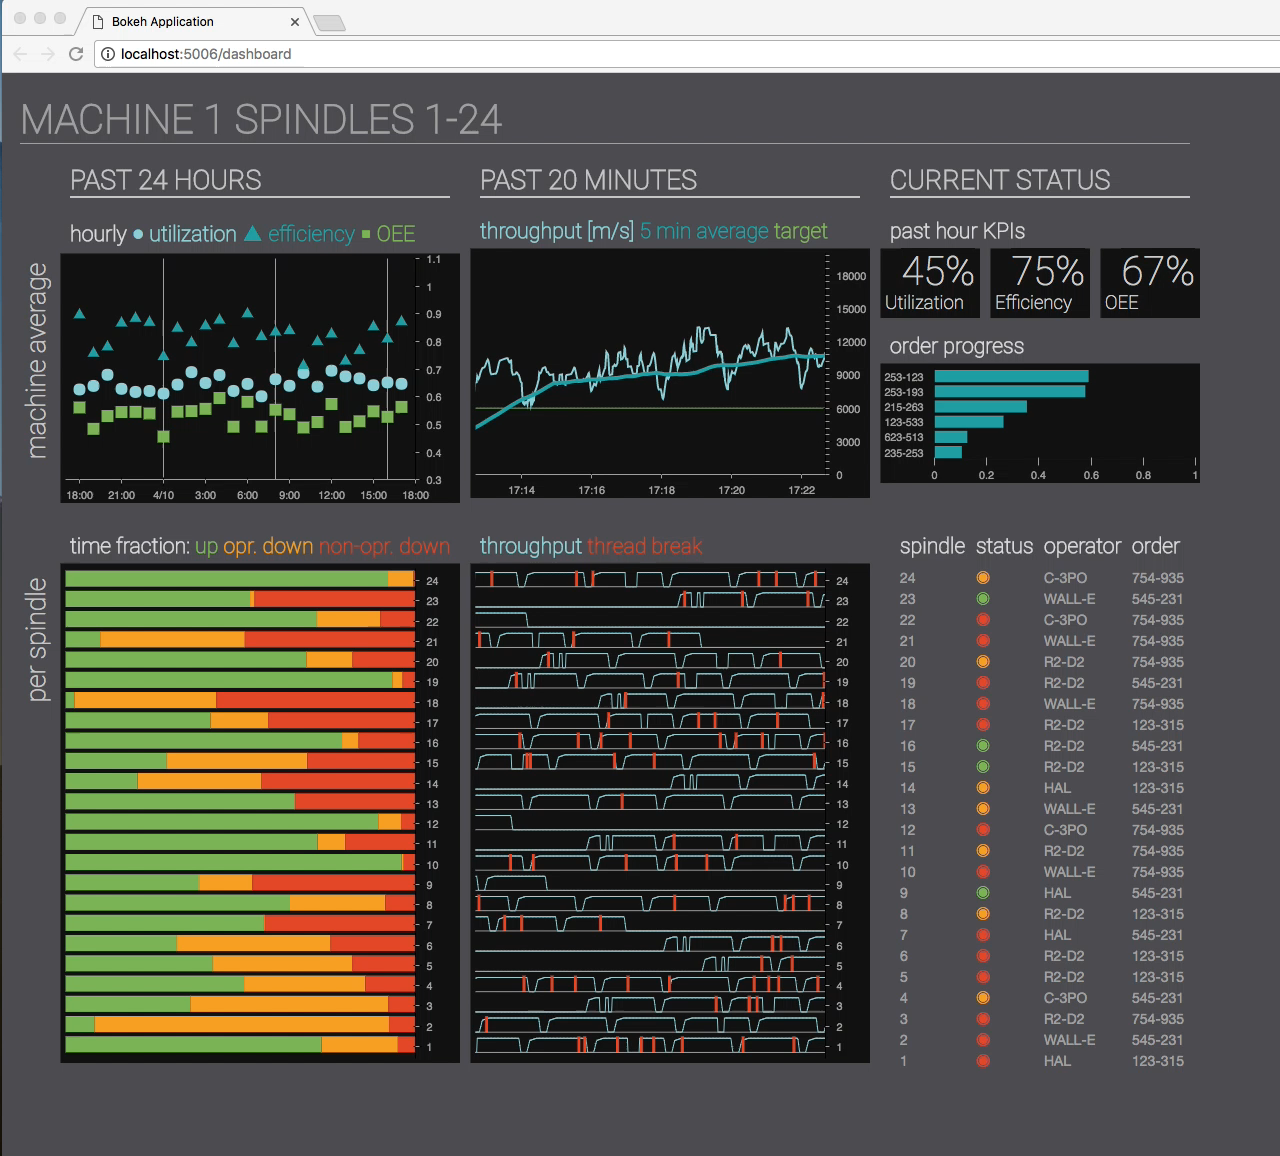 Snapshot of a streaming IoT dashboard showing graphs and color coded statuses